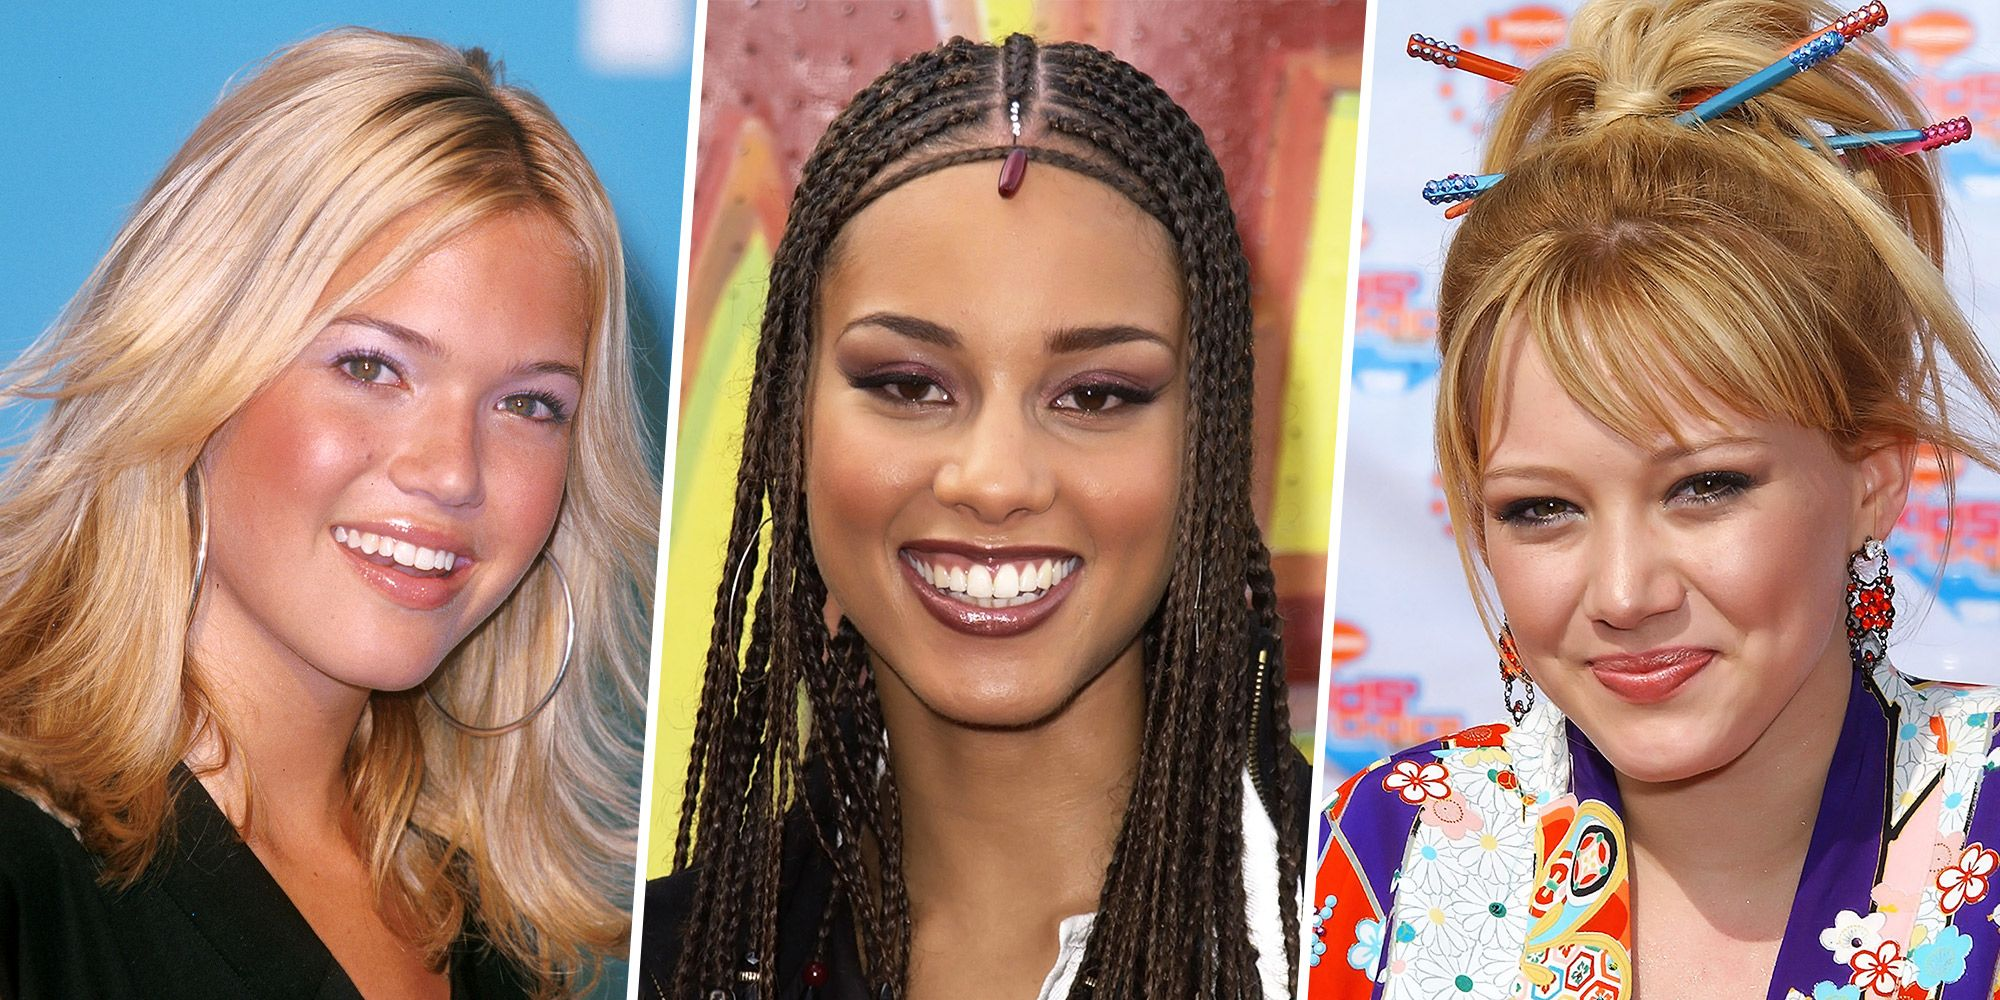 The Worst 00s Beauty Trends The Best And Worst Hair And Makeup Looks From The 2000s